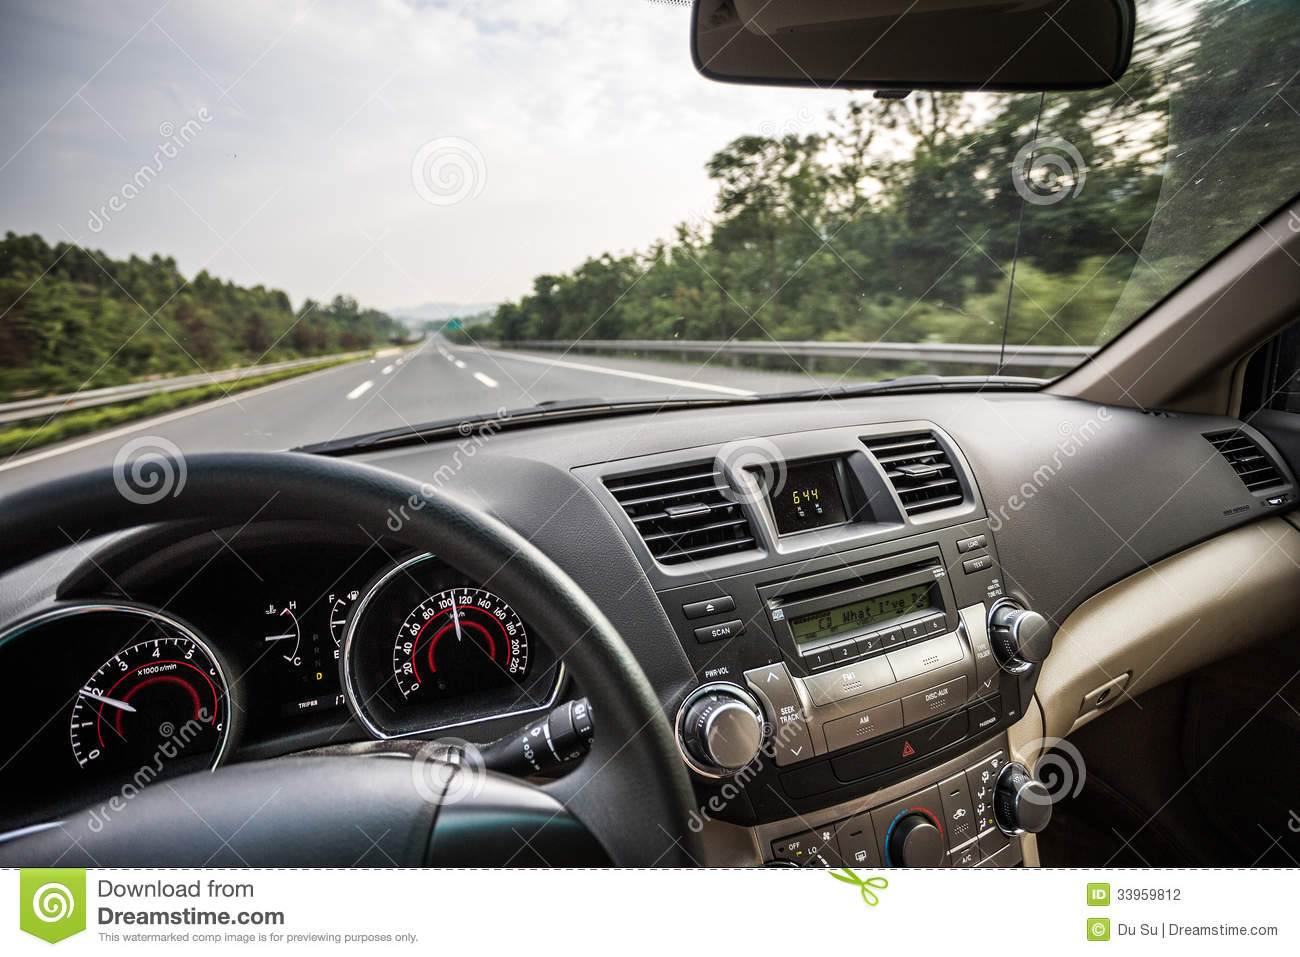 Car Driving On Road Stock Photo Image Of Distance Controls 33959812